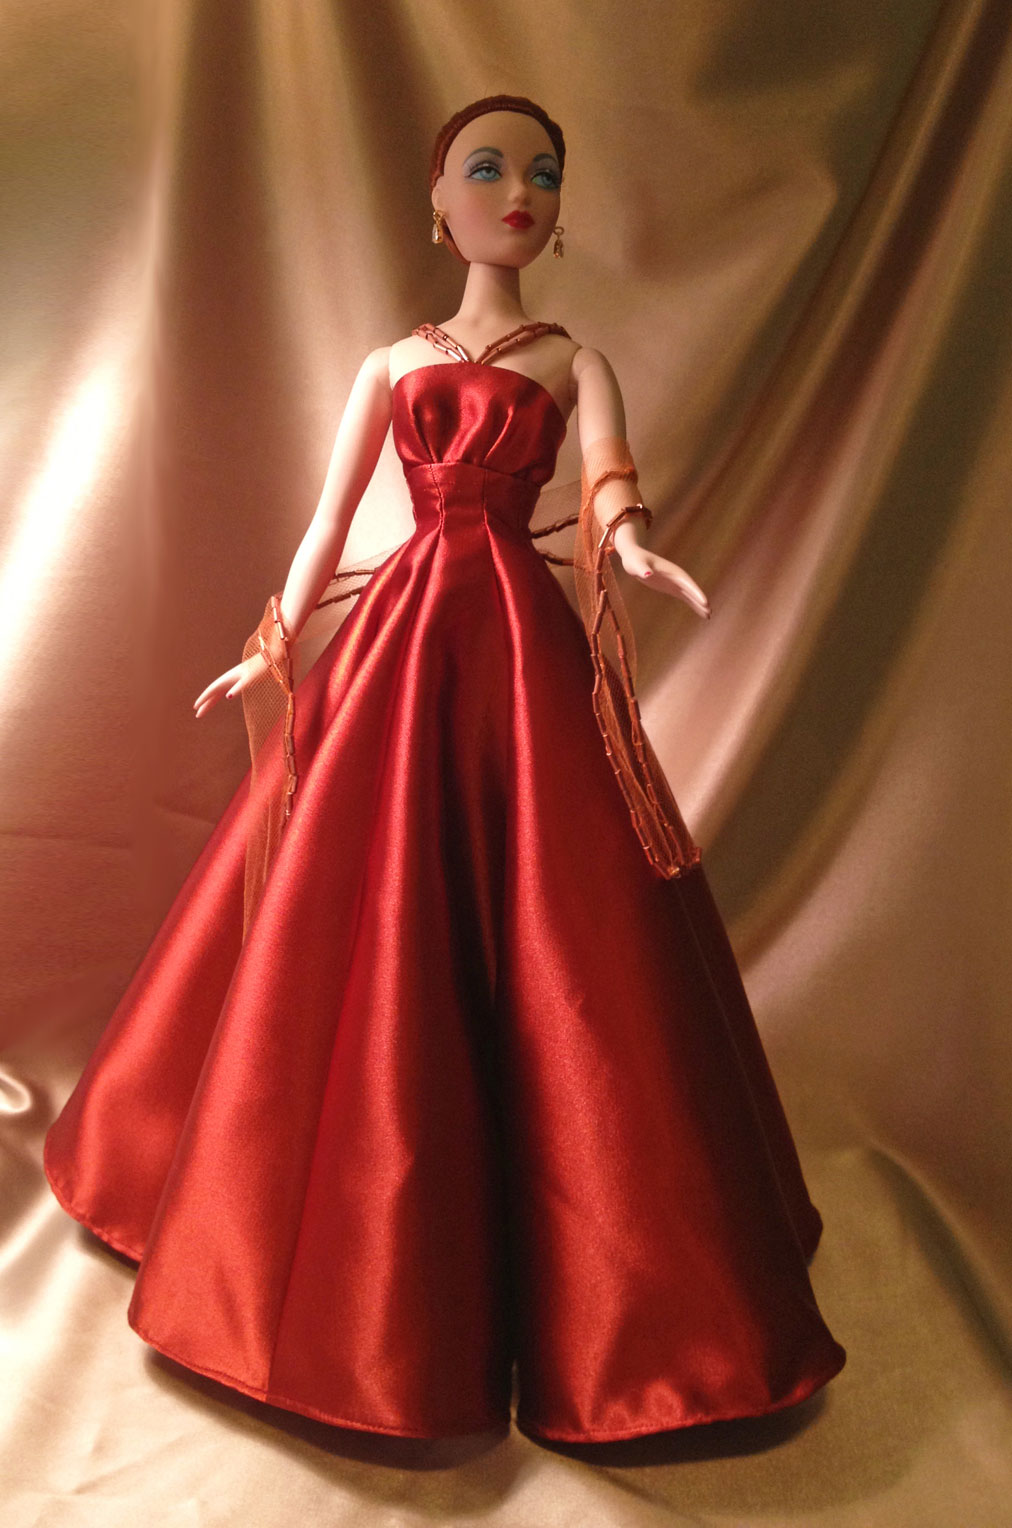 Beautiful Princess Diaries Gowns Photos - Images for wedding gown ...